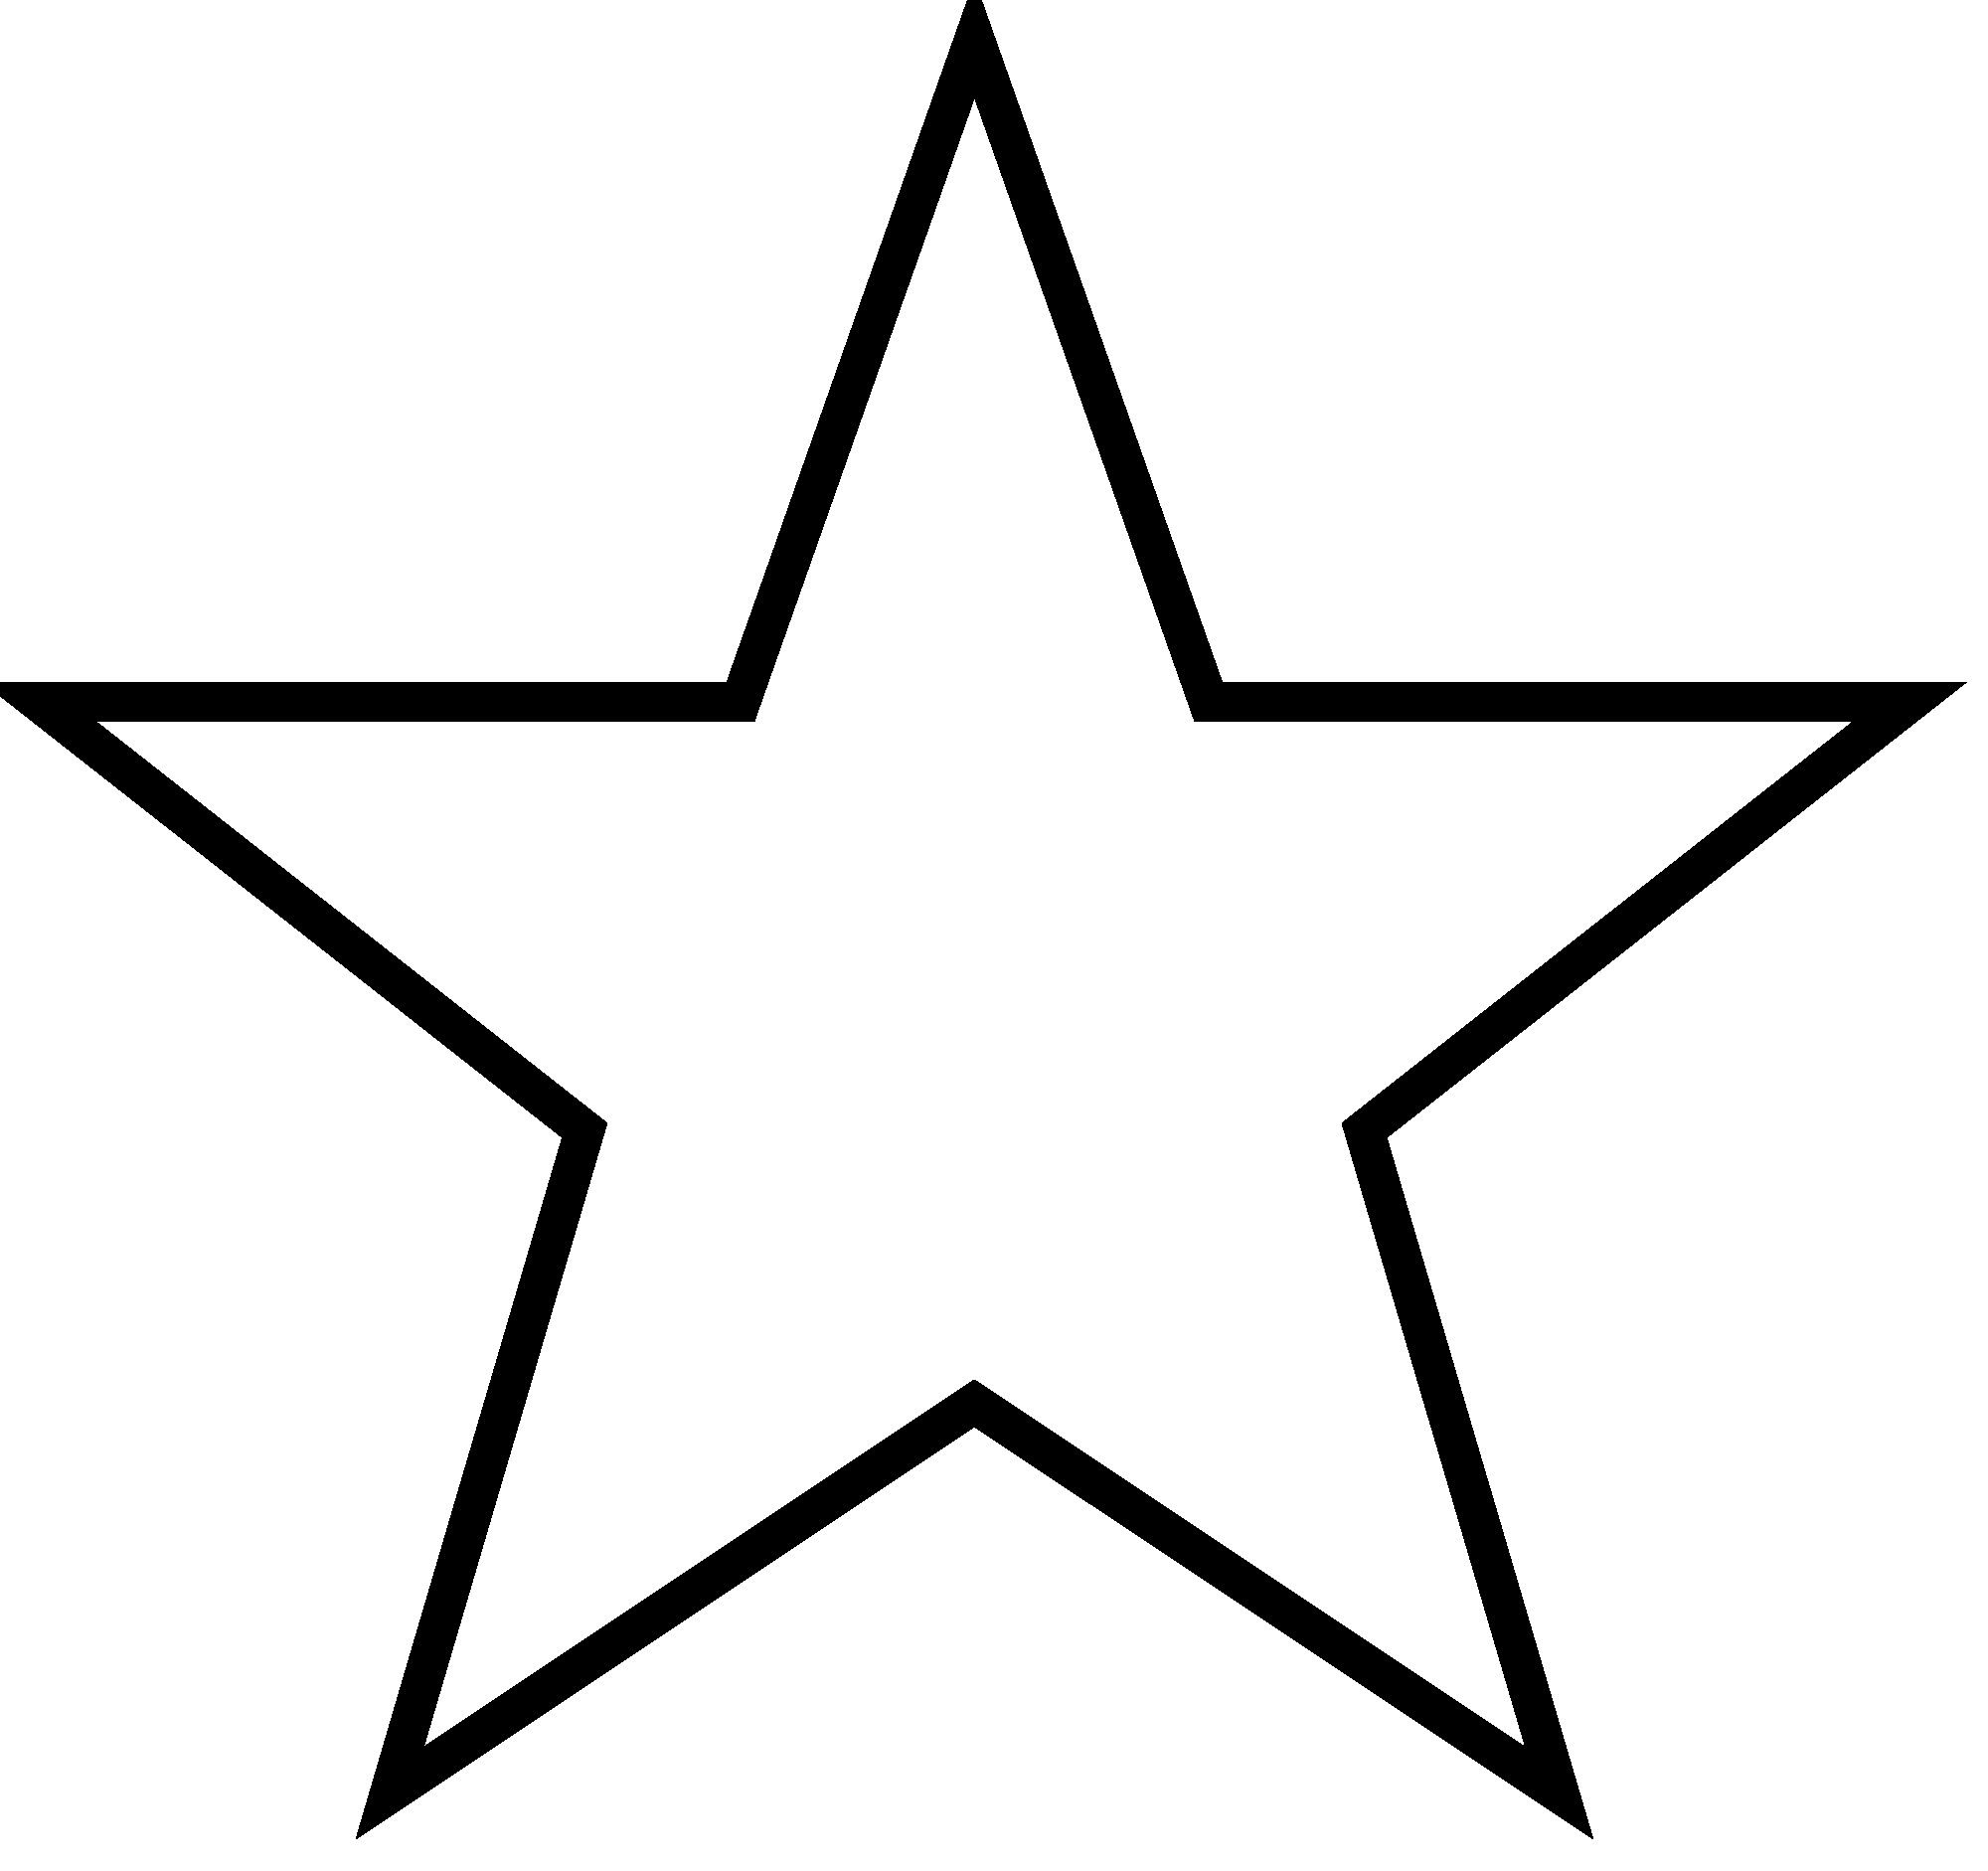 5 Point Star Outline Thatswhatsup Patriotic Star Ideas And Designs